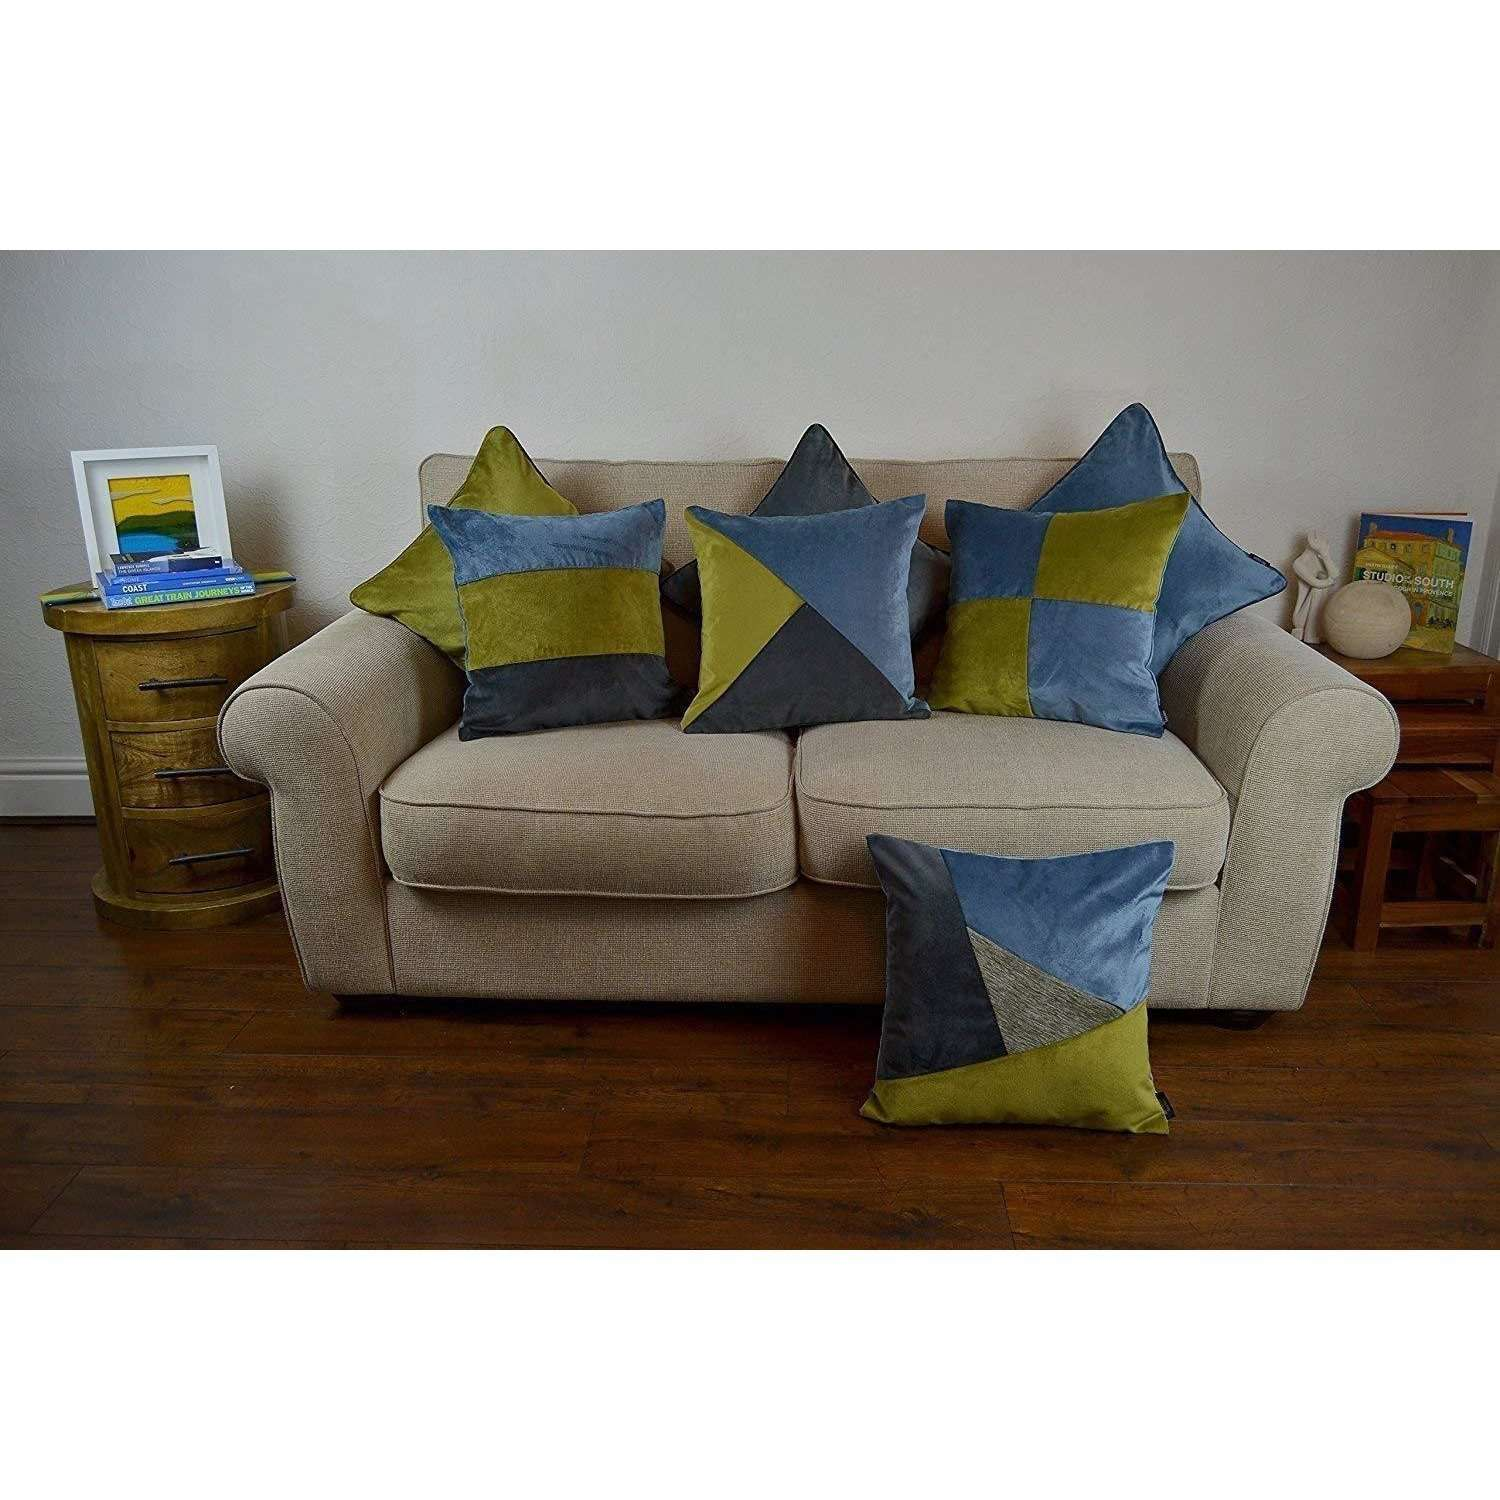 McAlister Textiles Patchwork Velvet Green, Blue + Grey Cushion Set Cushions and Covers